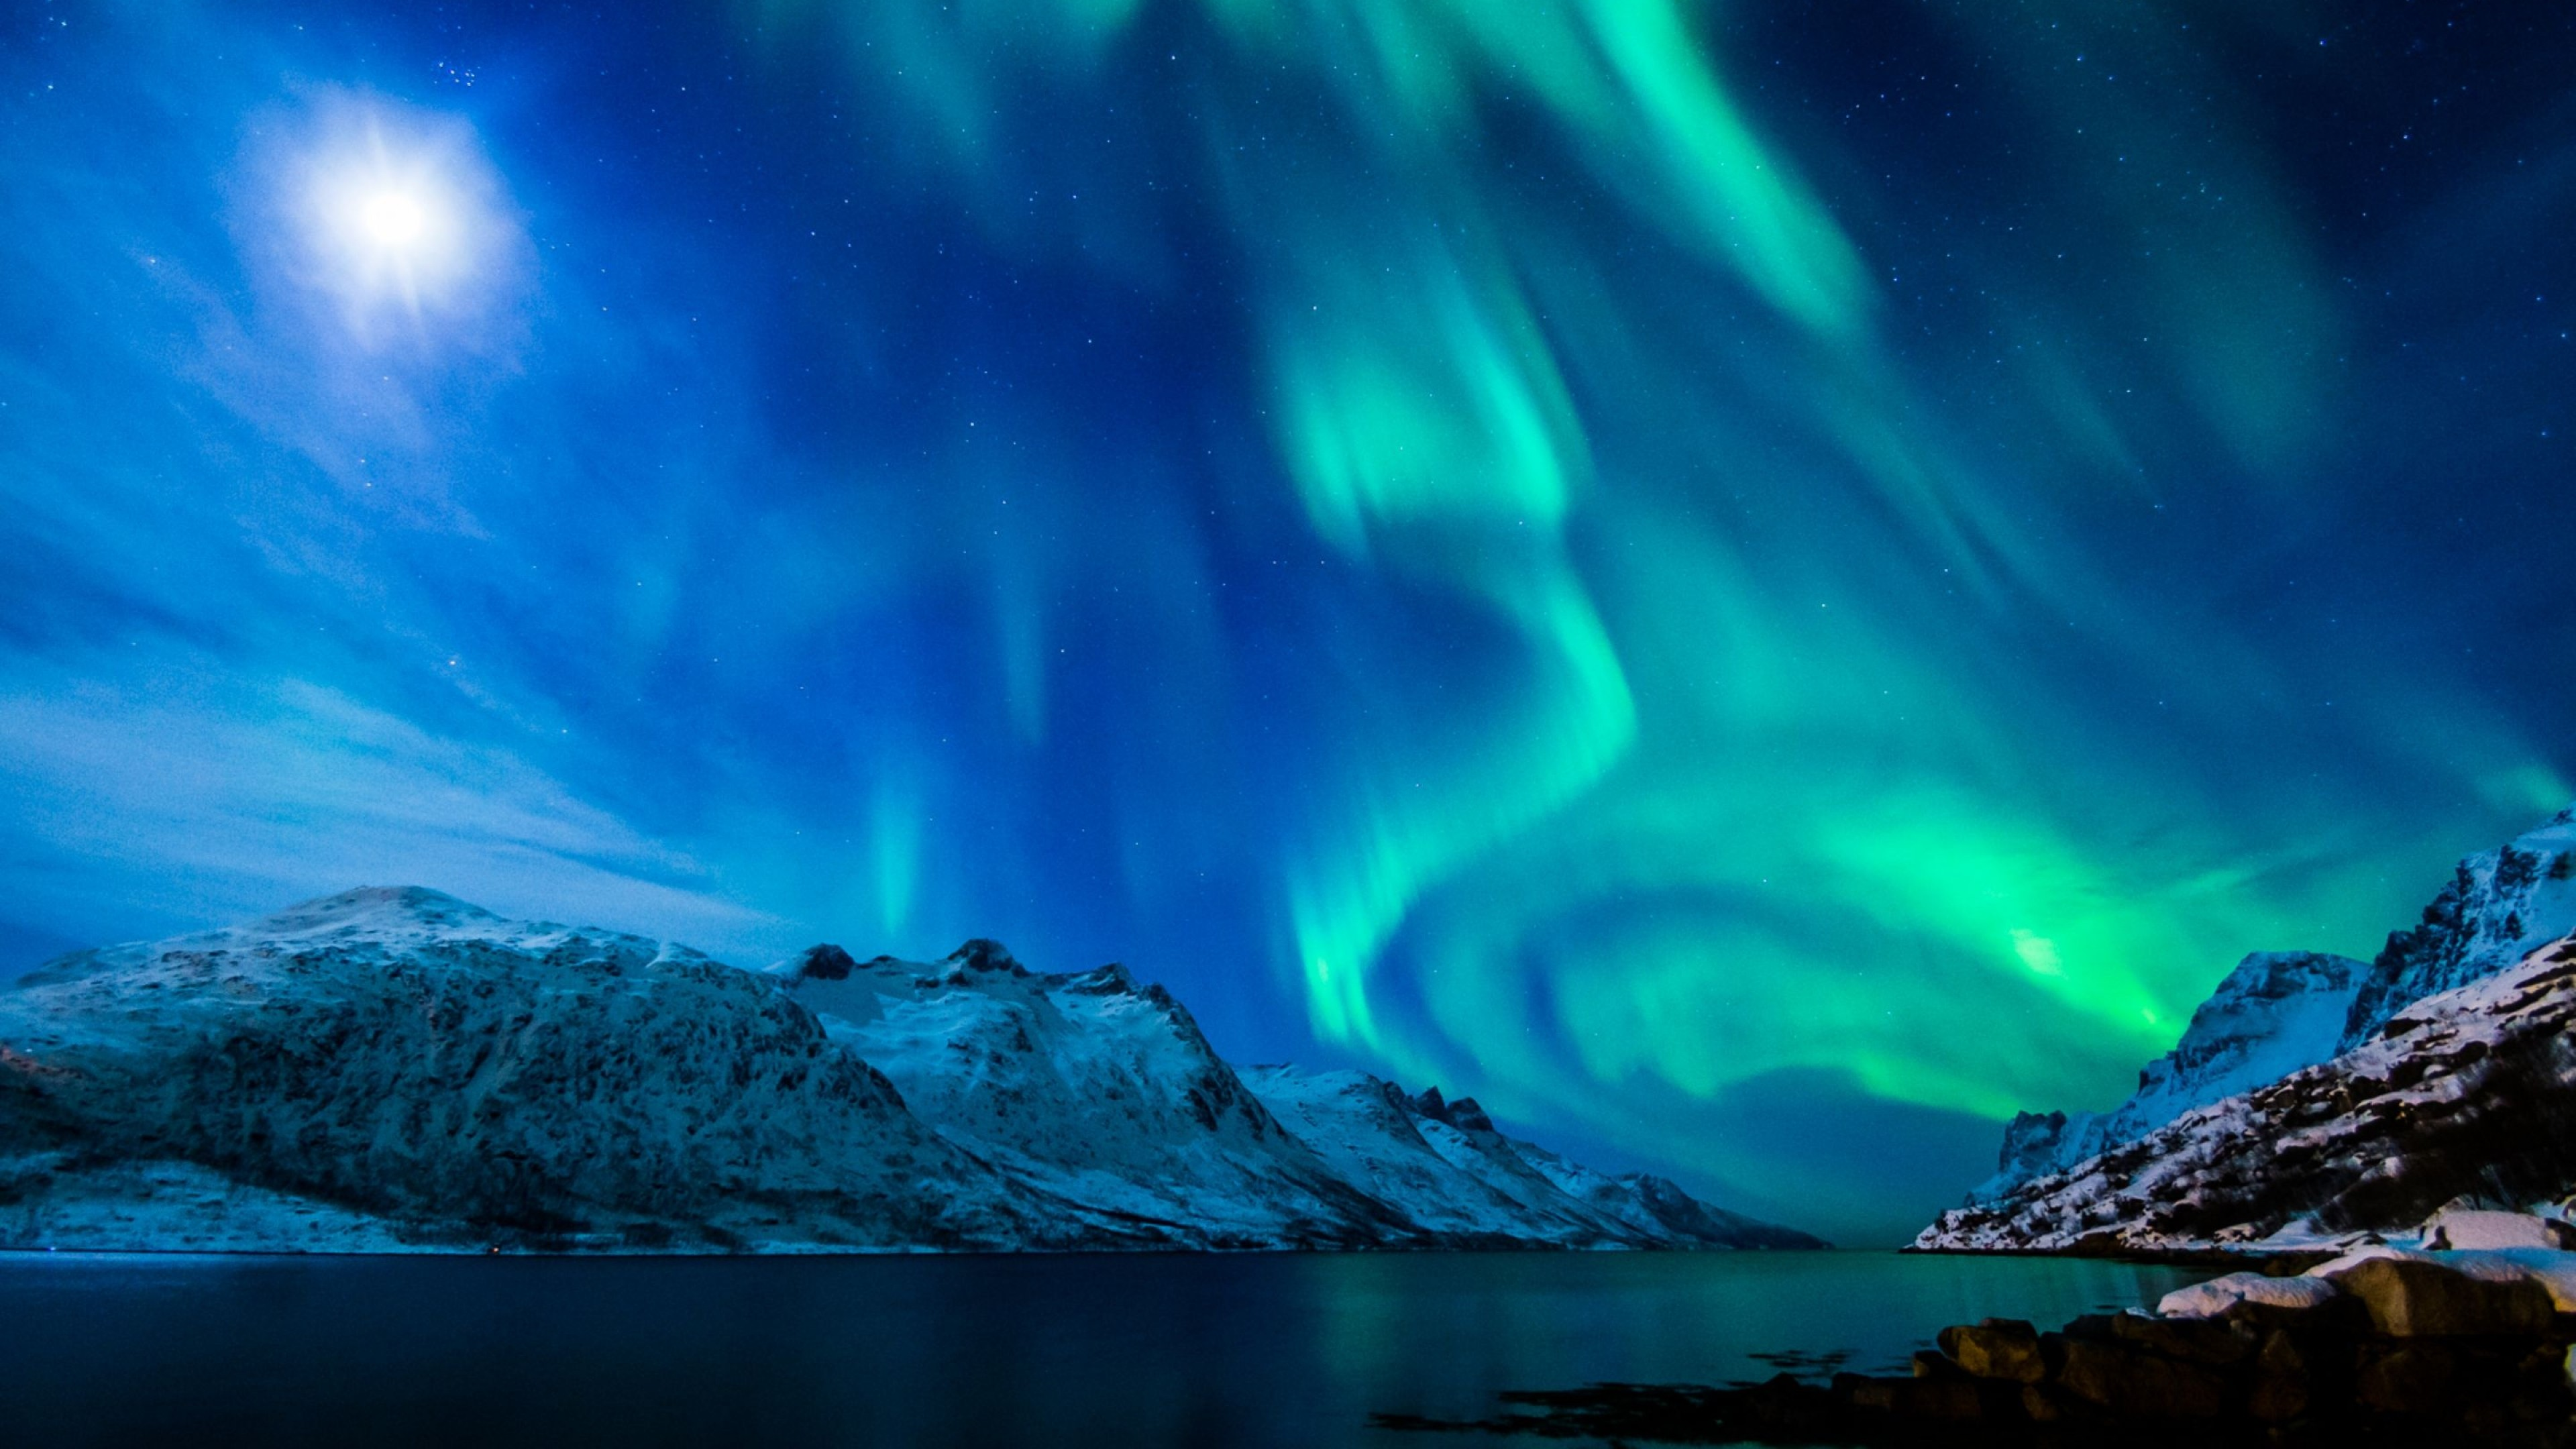 Northern Lights Wallpapers ·①